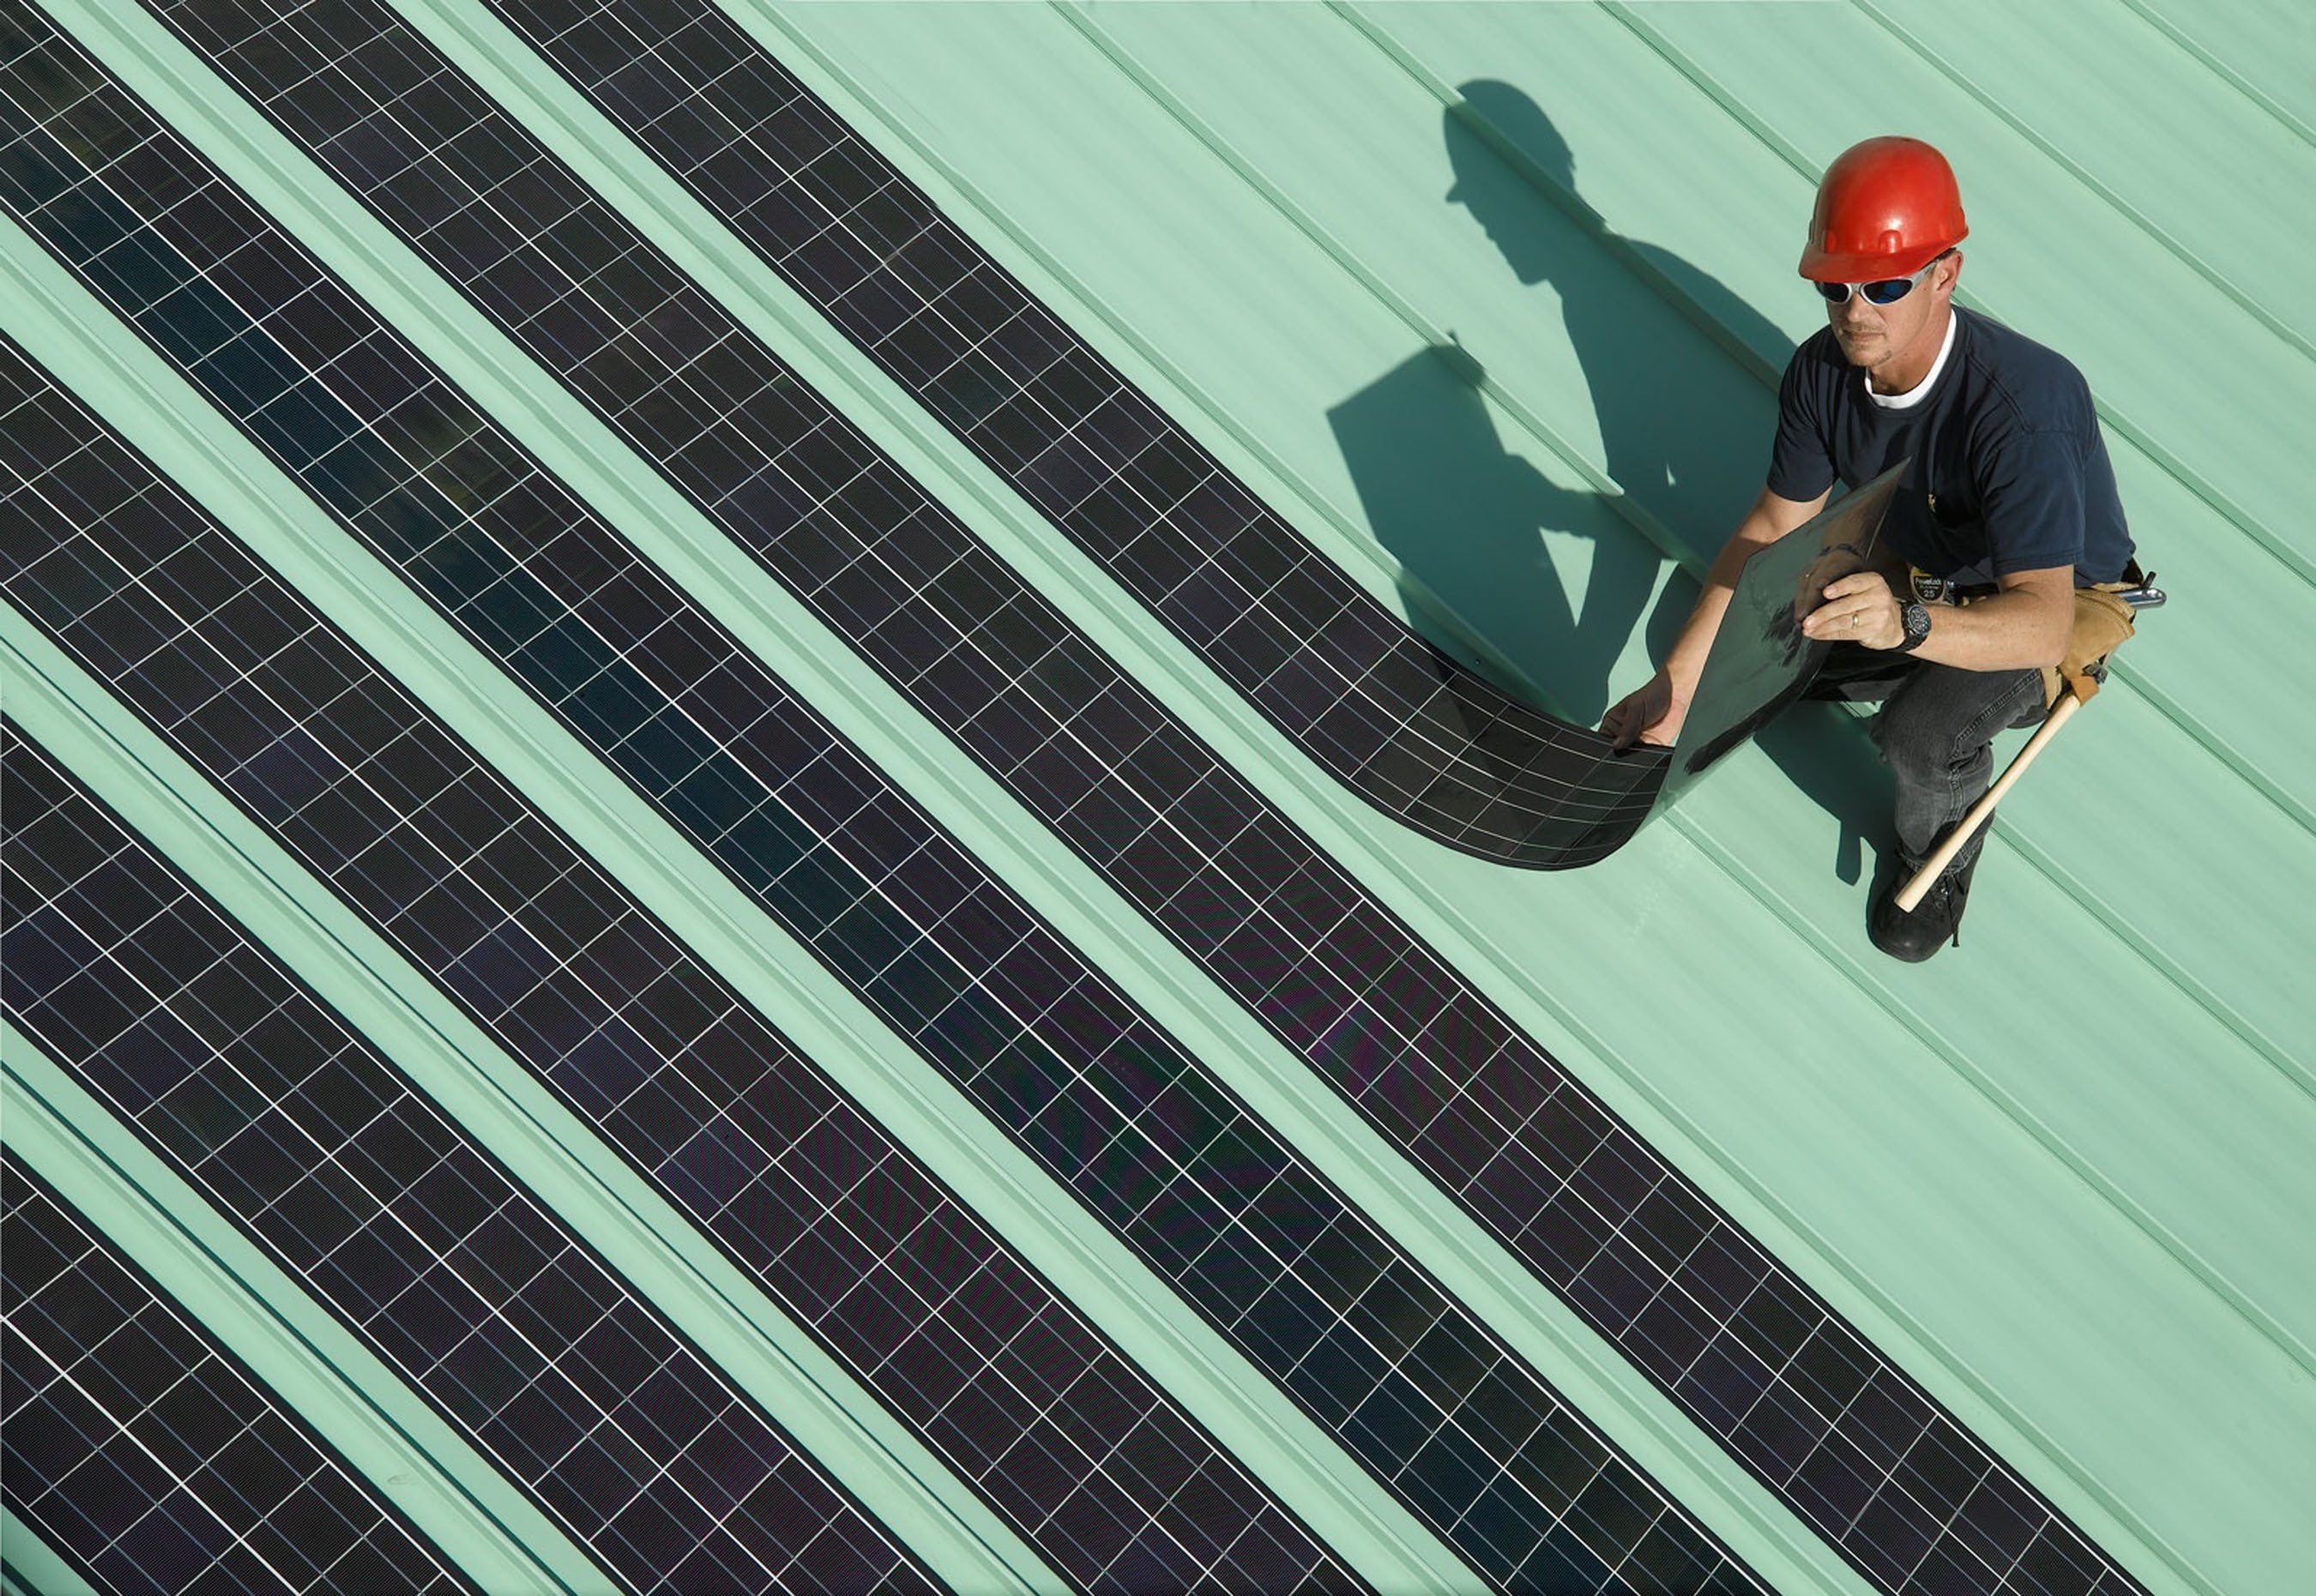 SoloPower flexible solar panels are lightweight and can be installed quickly on commercial buildings, the company says.